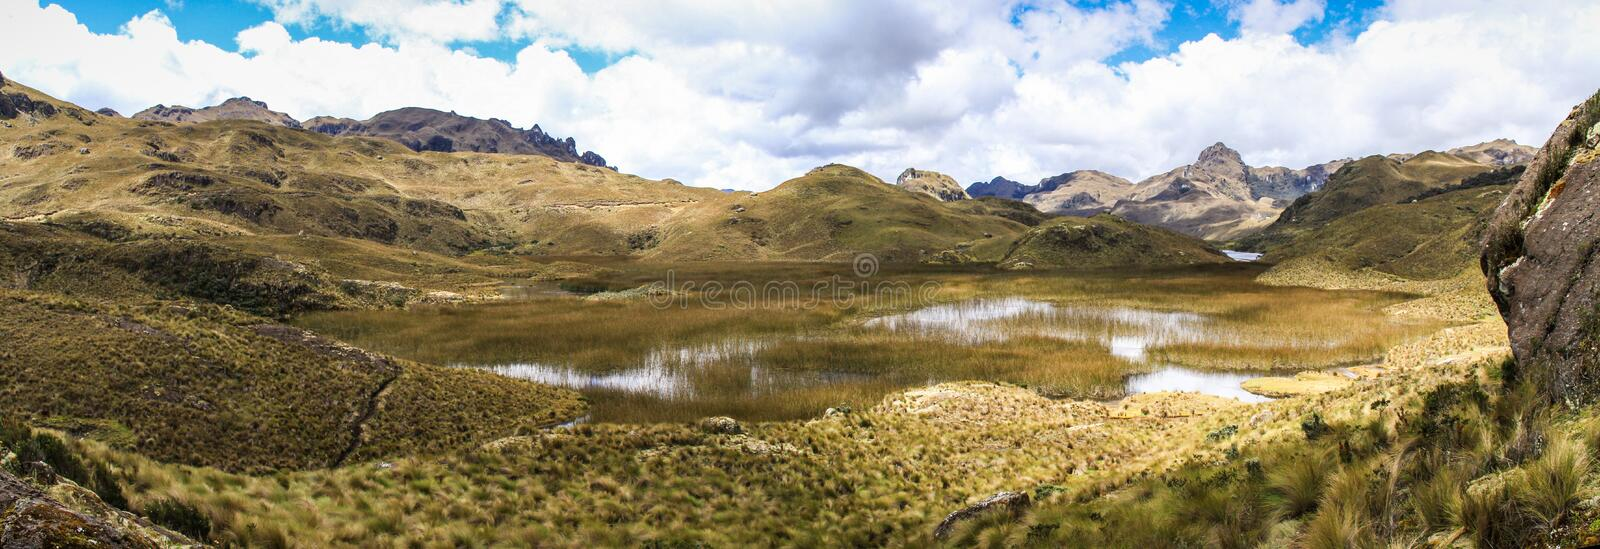 Cajas National Park Panorama, West of Cuenca, Ecuador. Cajas National Park is a high-altitude area west of Cuenca, Ecuador. It's known for trails through stock photography